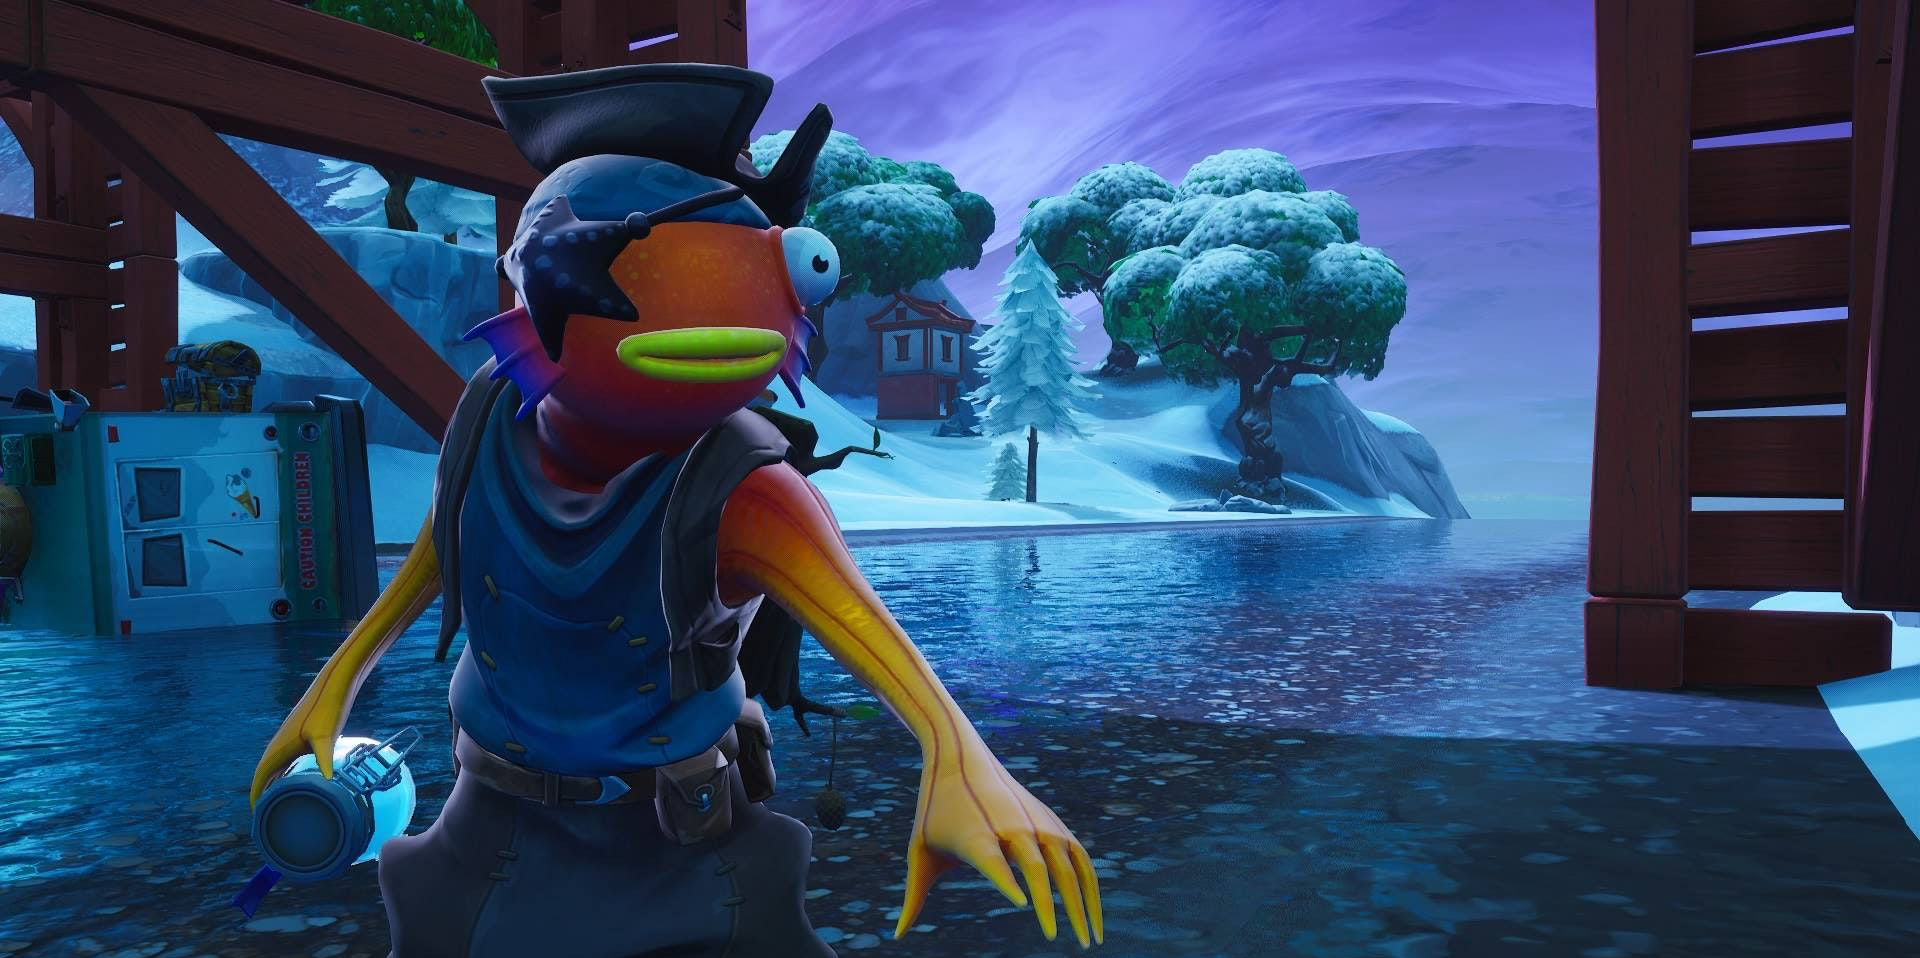 Where to Find 'Fortnite' Jigsaw Puzzle Pieces Under Bridges and in Caves